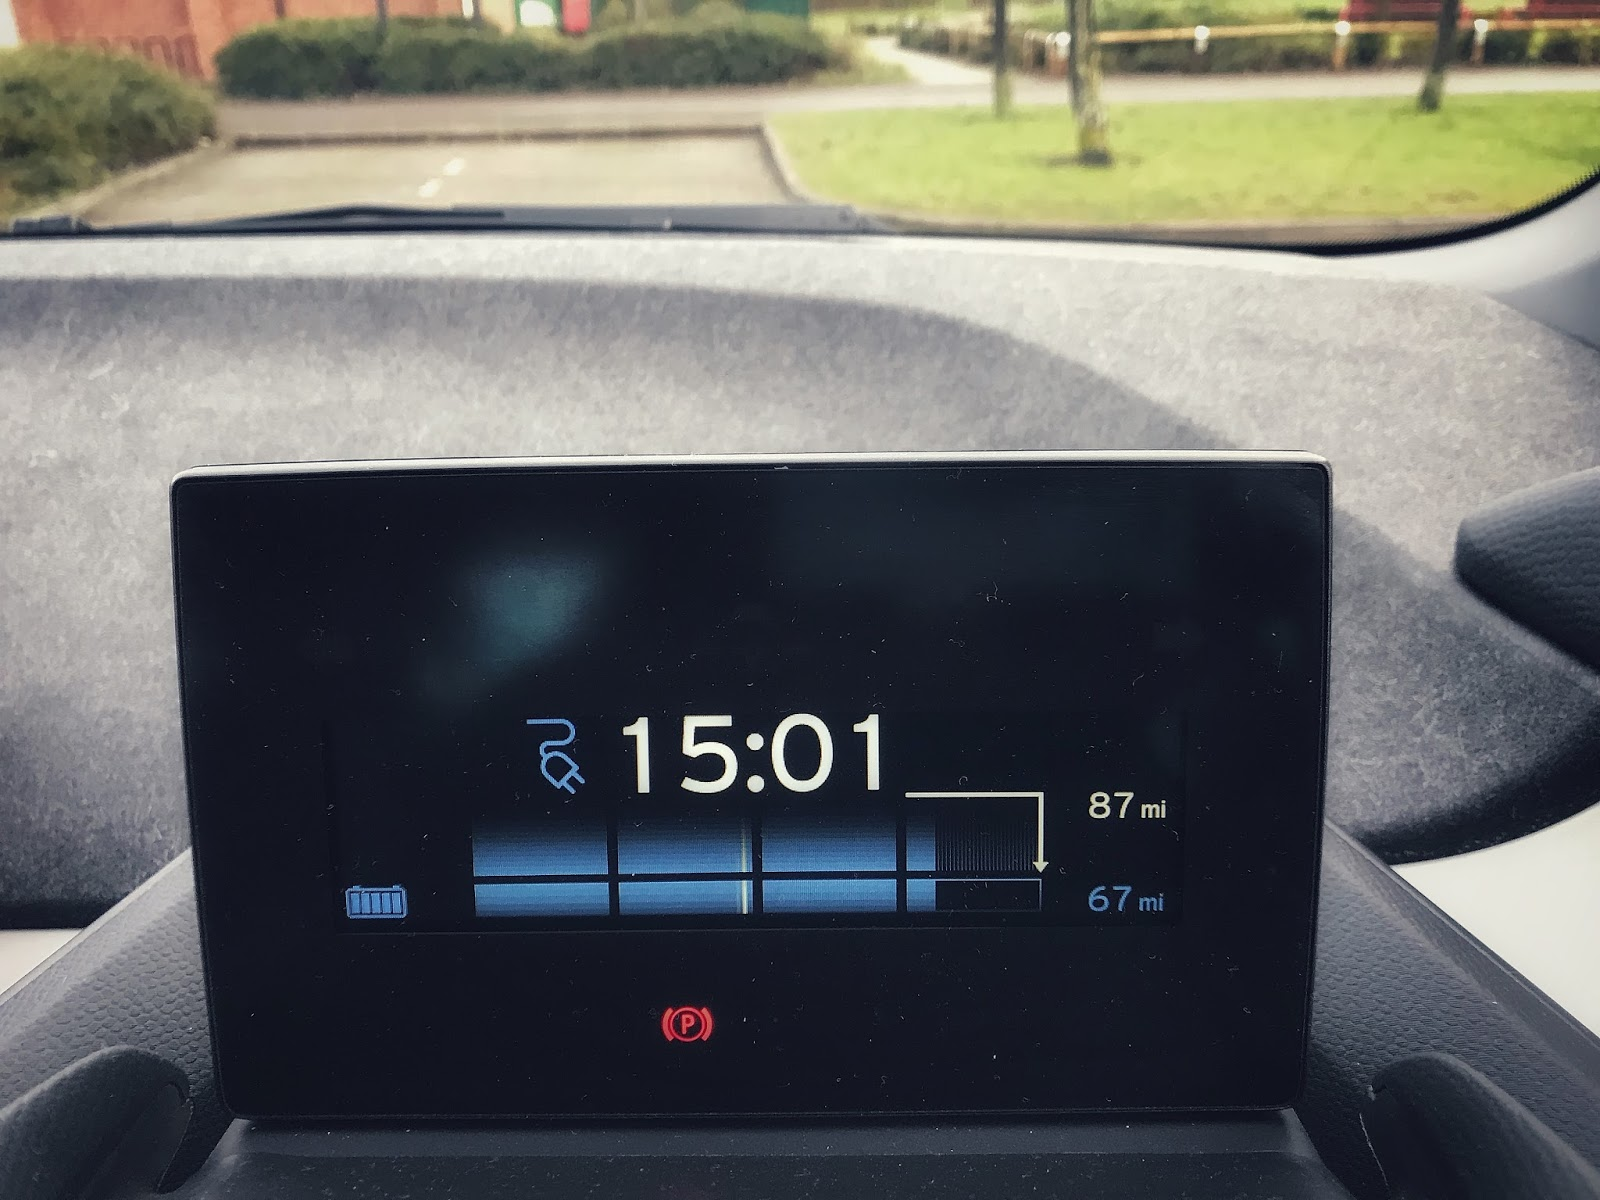 BMW i3 Electric Car Charge Status Interior Display